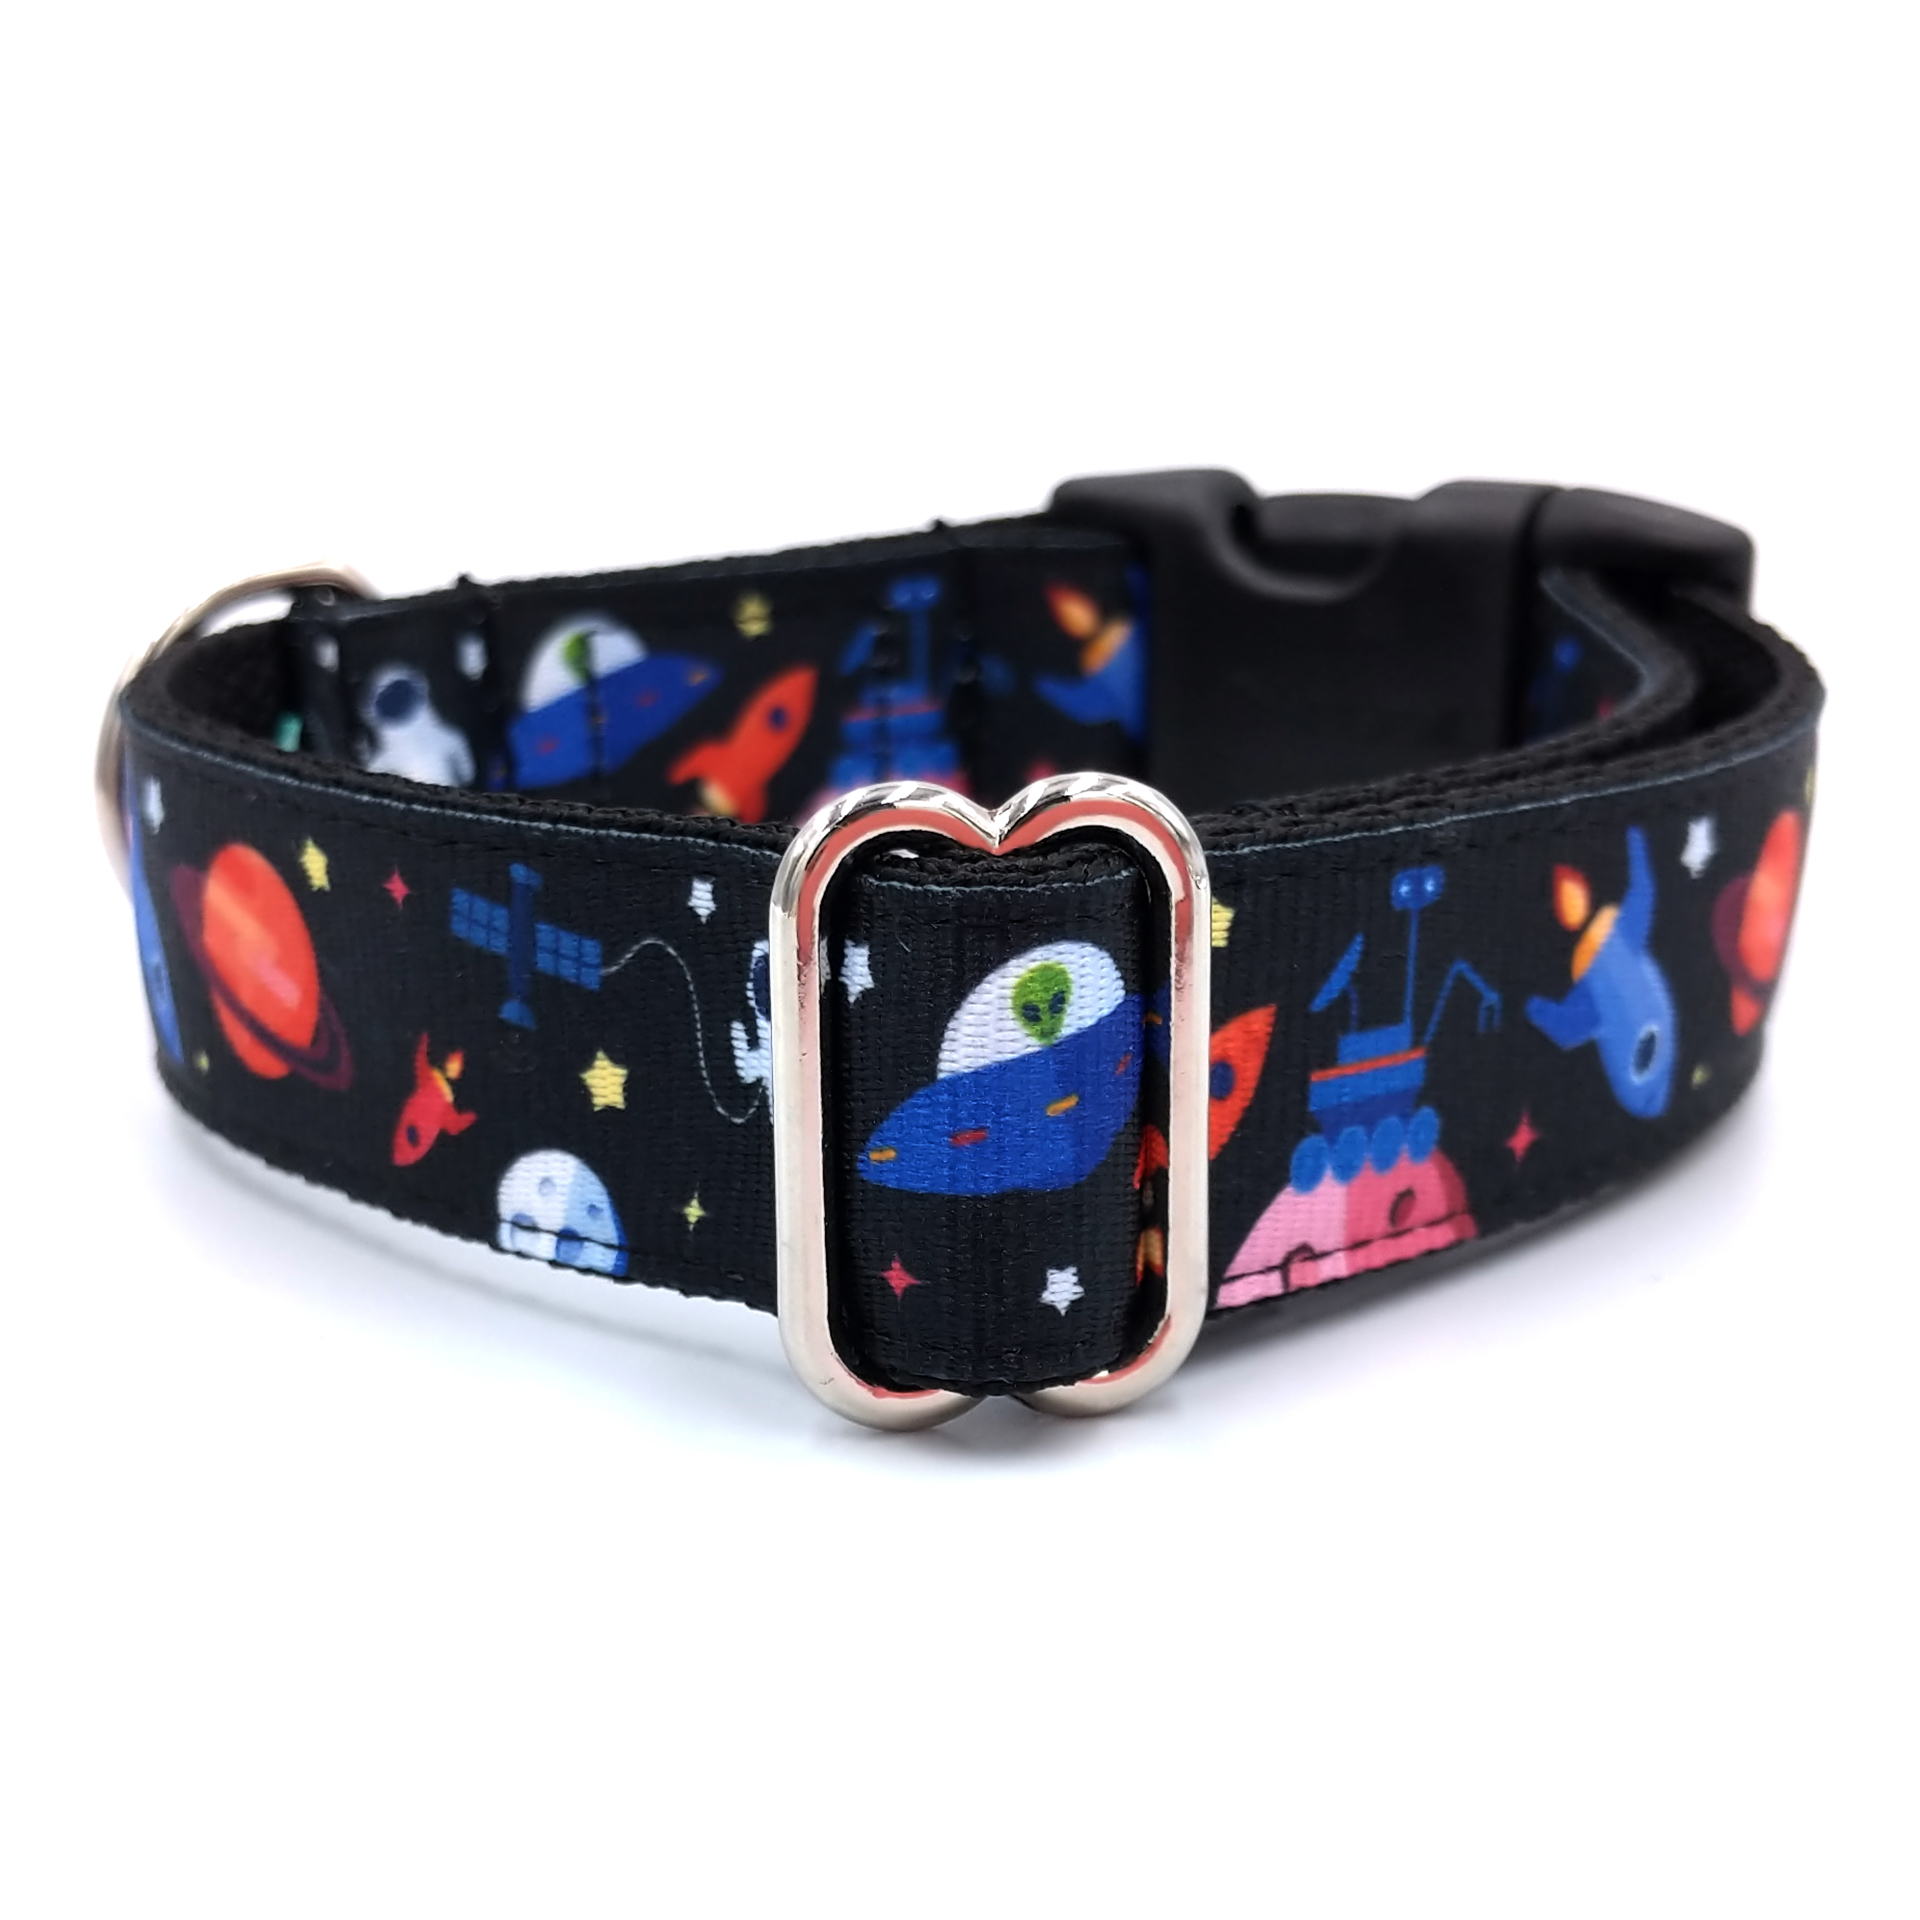 Astronaut dog collar